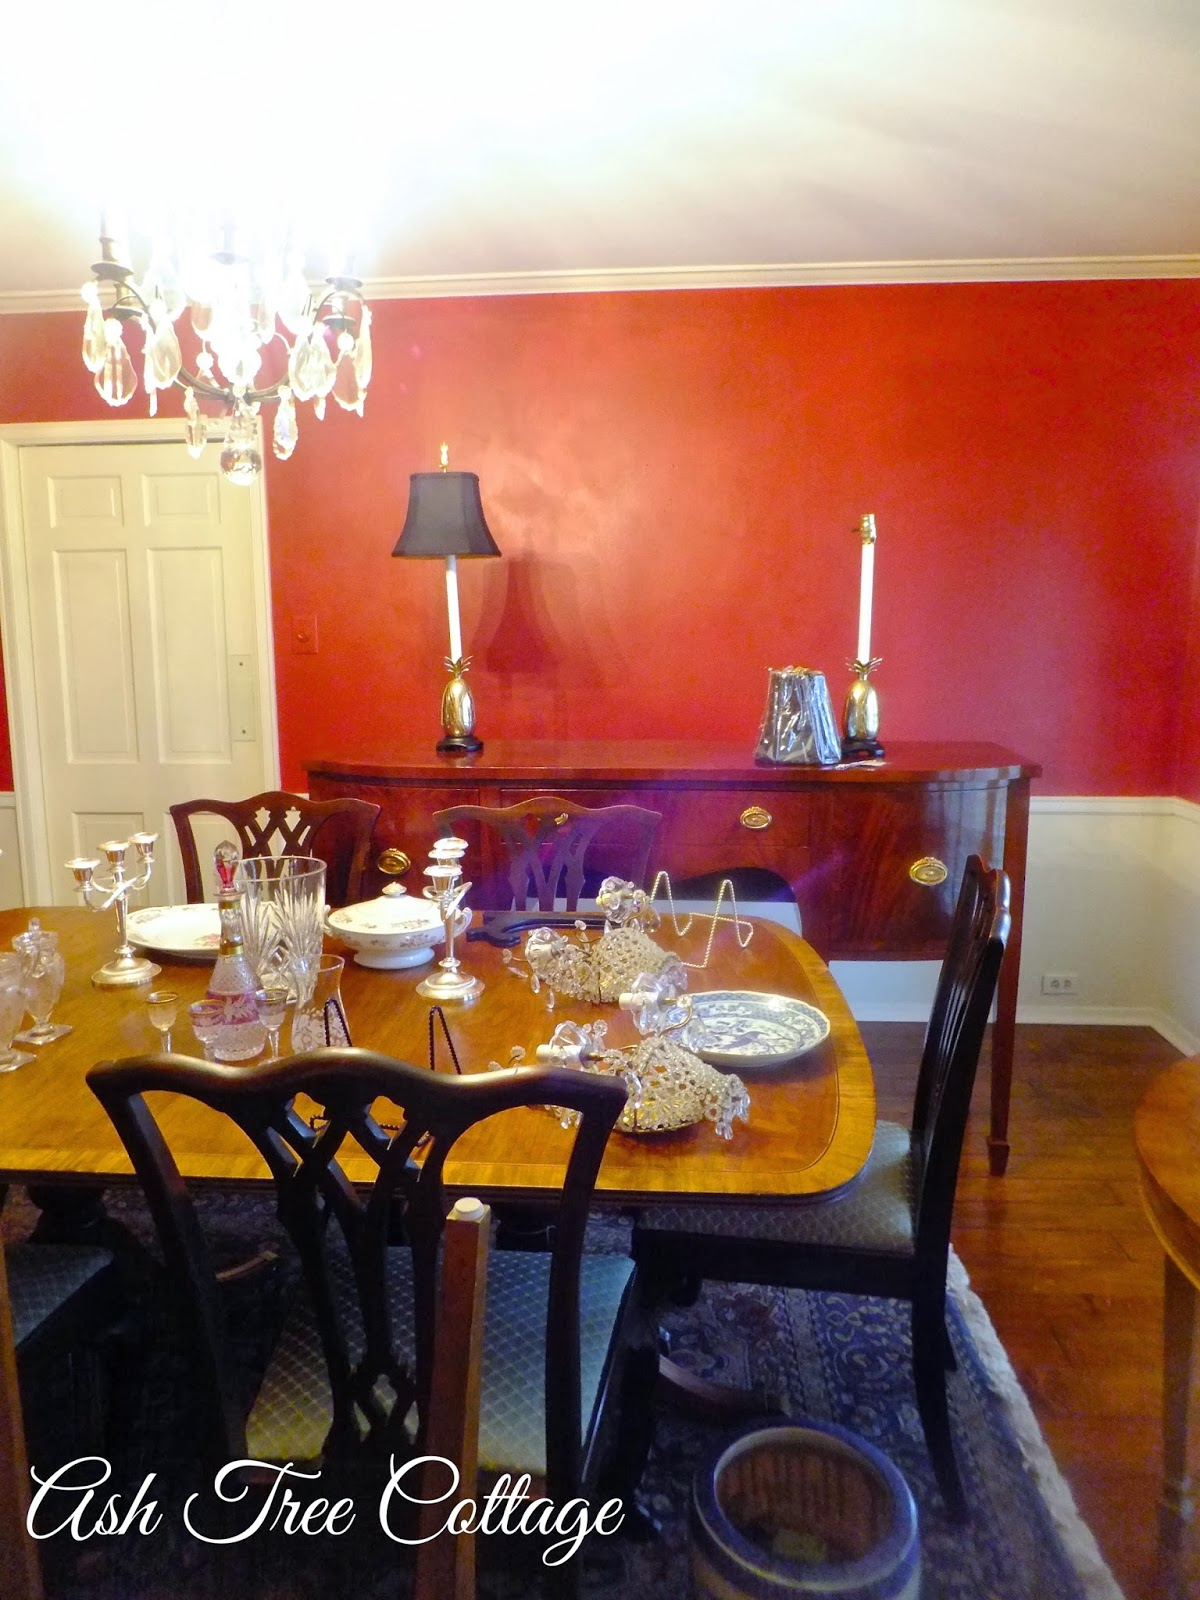 Ash Tree Cottage Newly Painted Red Dining Room